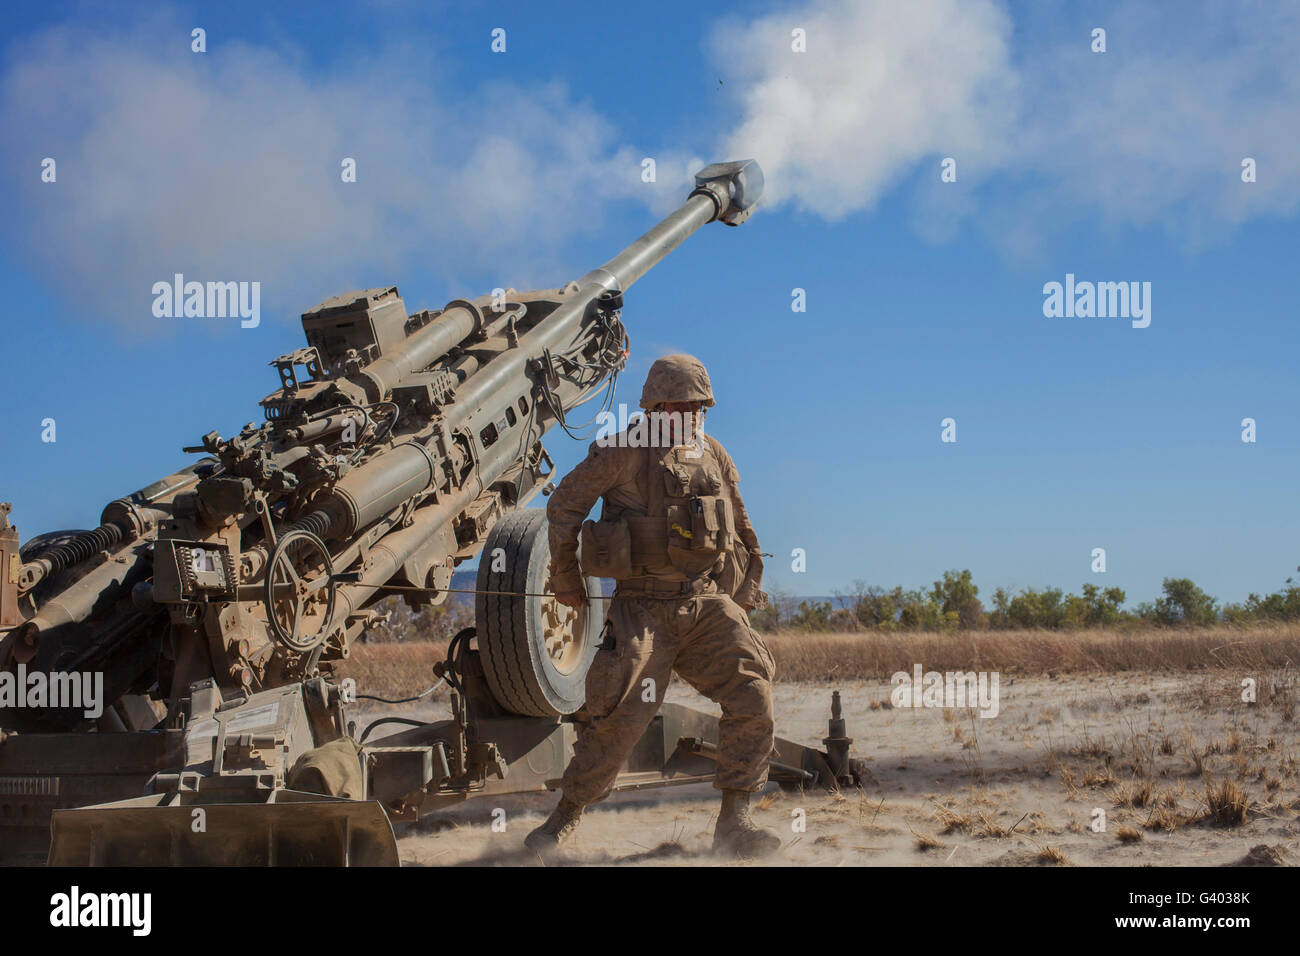 U.S. Marine fires an M777A2 howitzer. - Stock Image